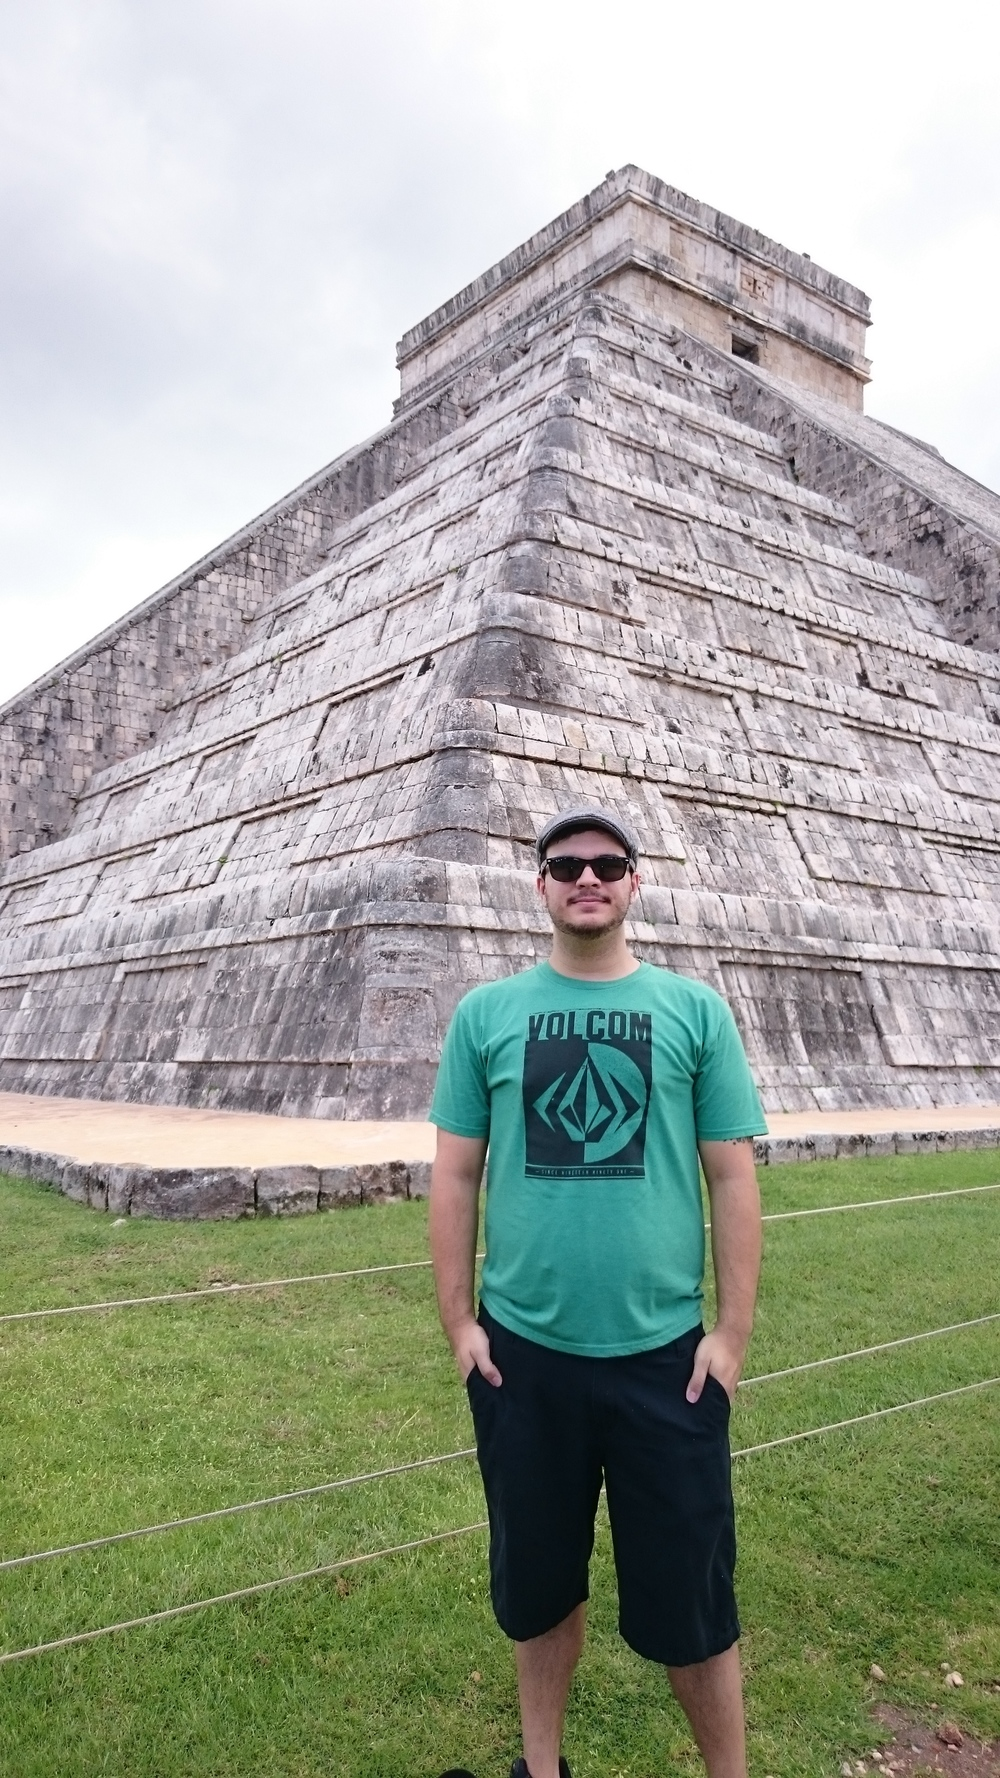 Me at the Chichén Itzá pyramid